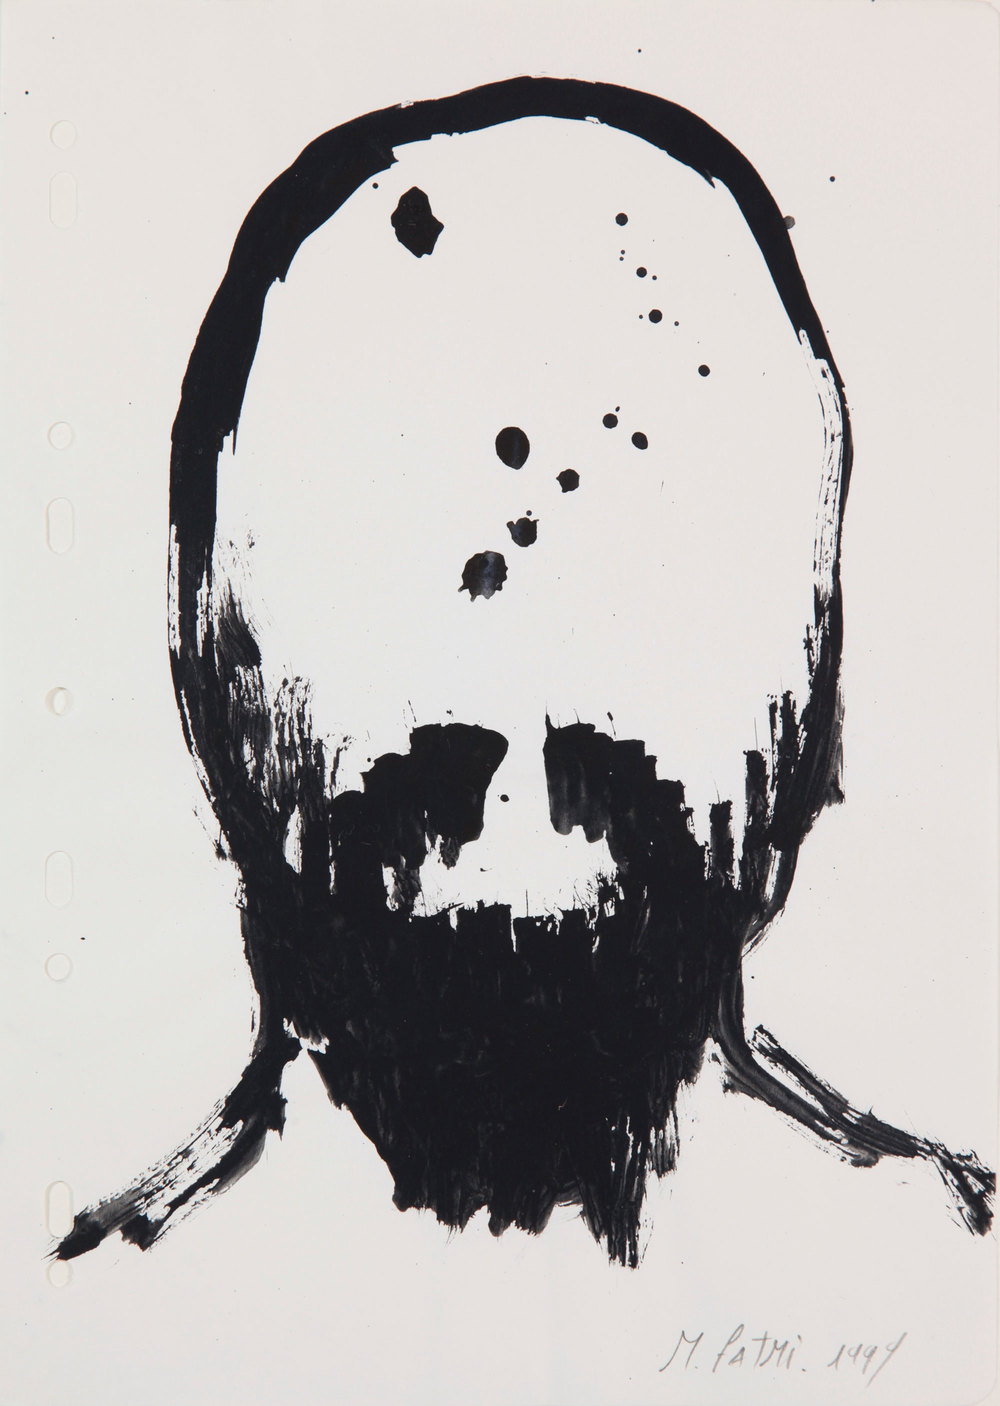 Face,1999, serie of 13 drawings, ink and acrylic on paper, 29,7 x 21 cm. Courtesy of the artist. Private collection. Photo credit : mounir fatmi